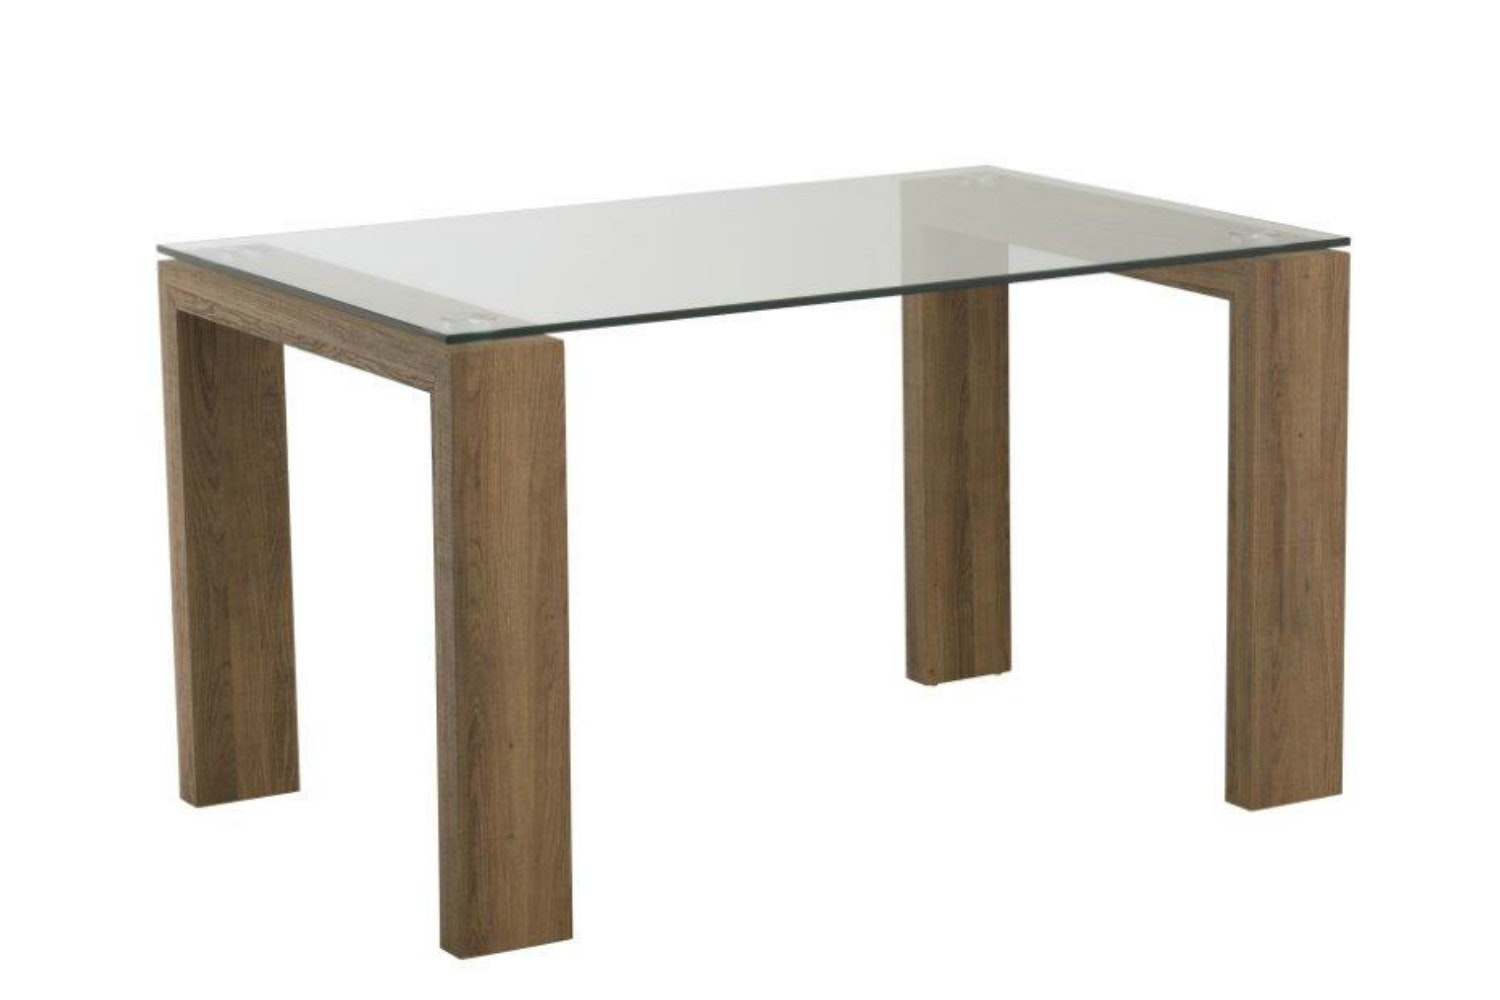 Ryder Dining Table 1.3 | Clear